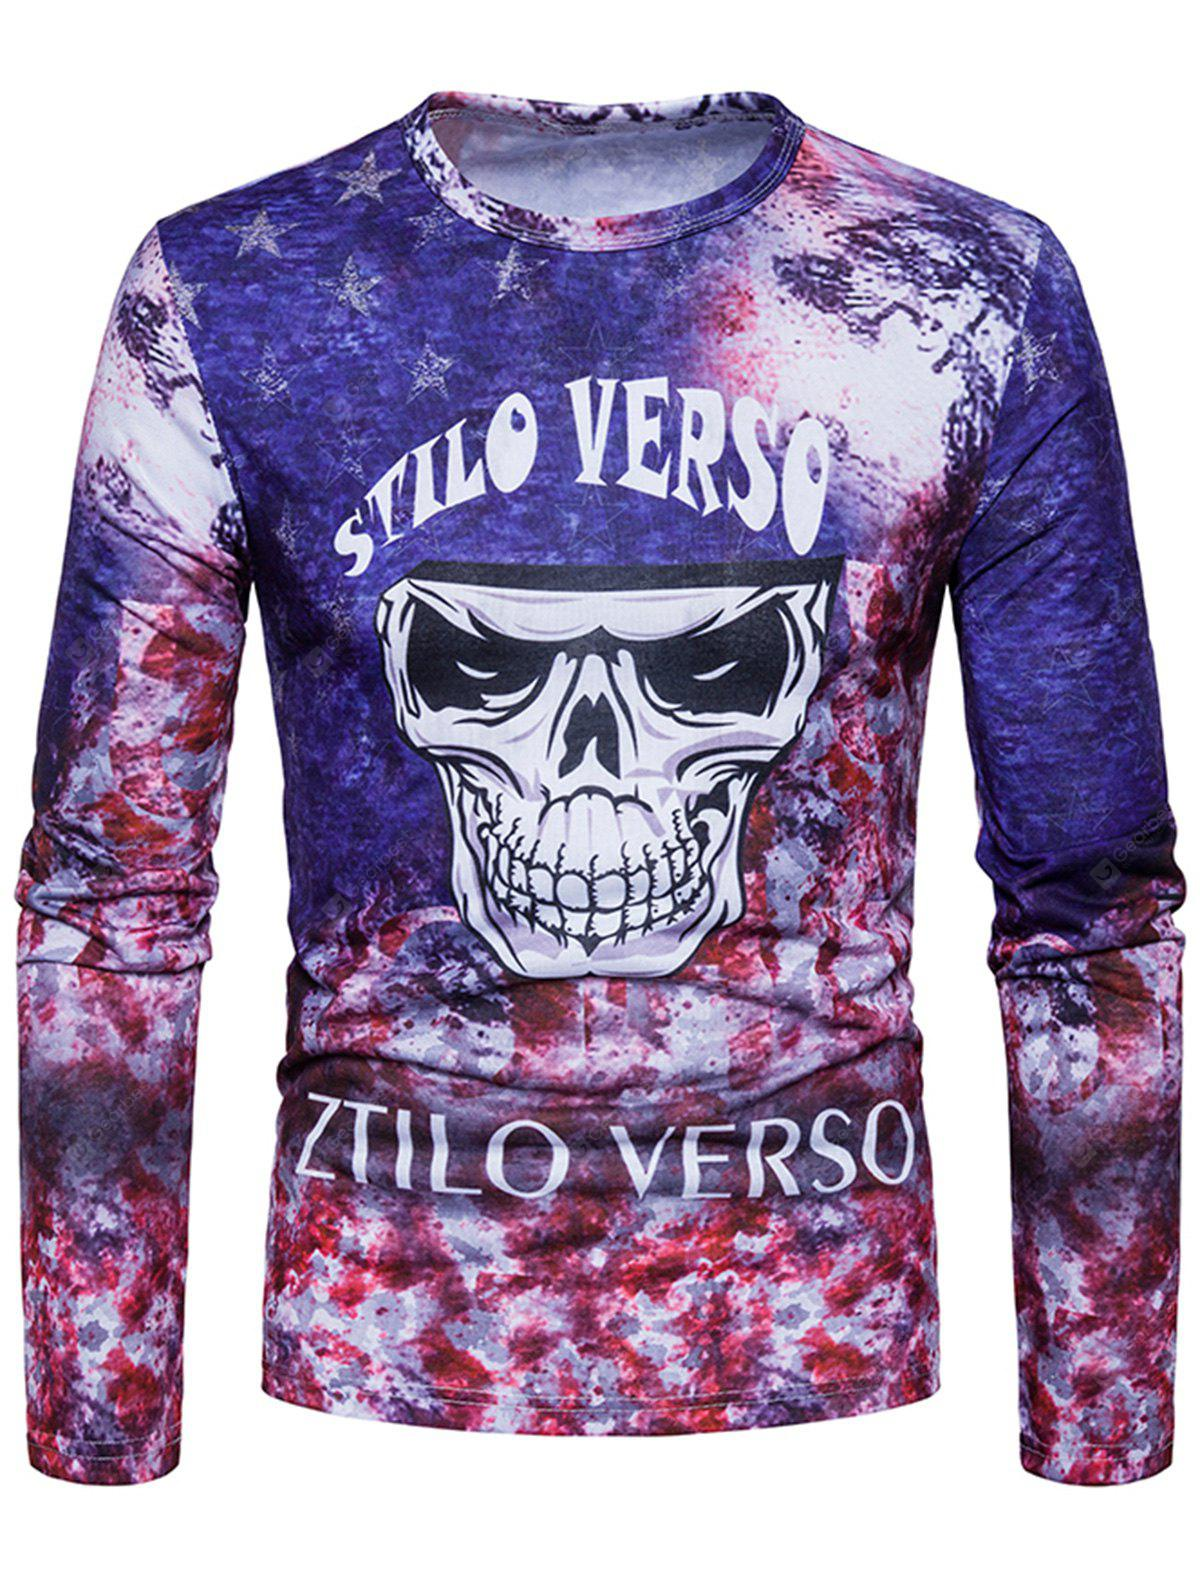 COLORMIX M Crew Neck Skull Tie Dye Print Long Sleeve T-shirt